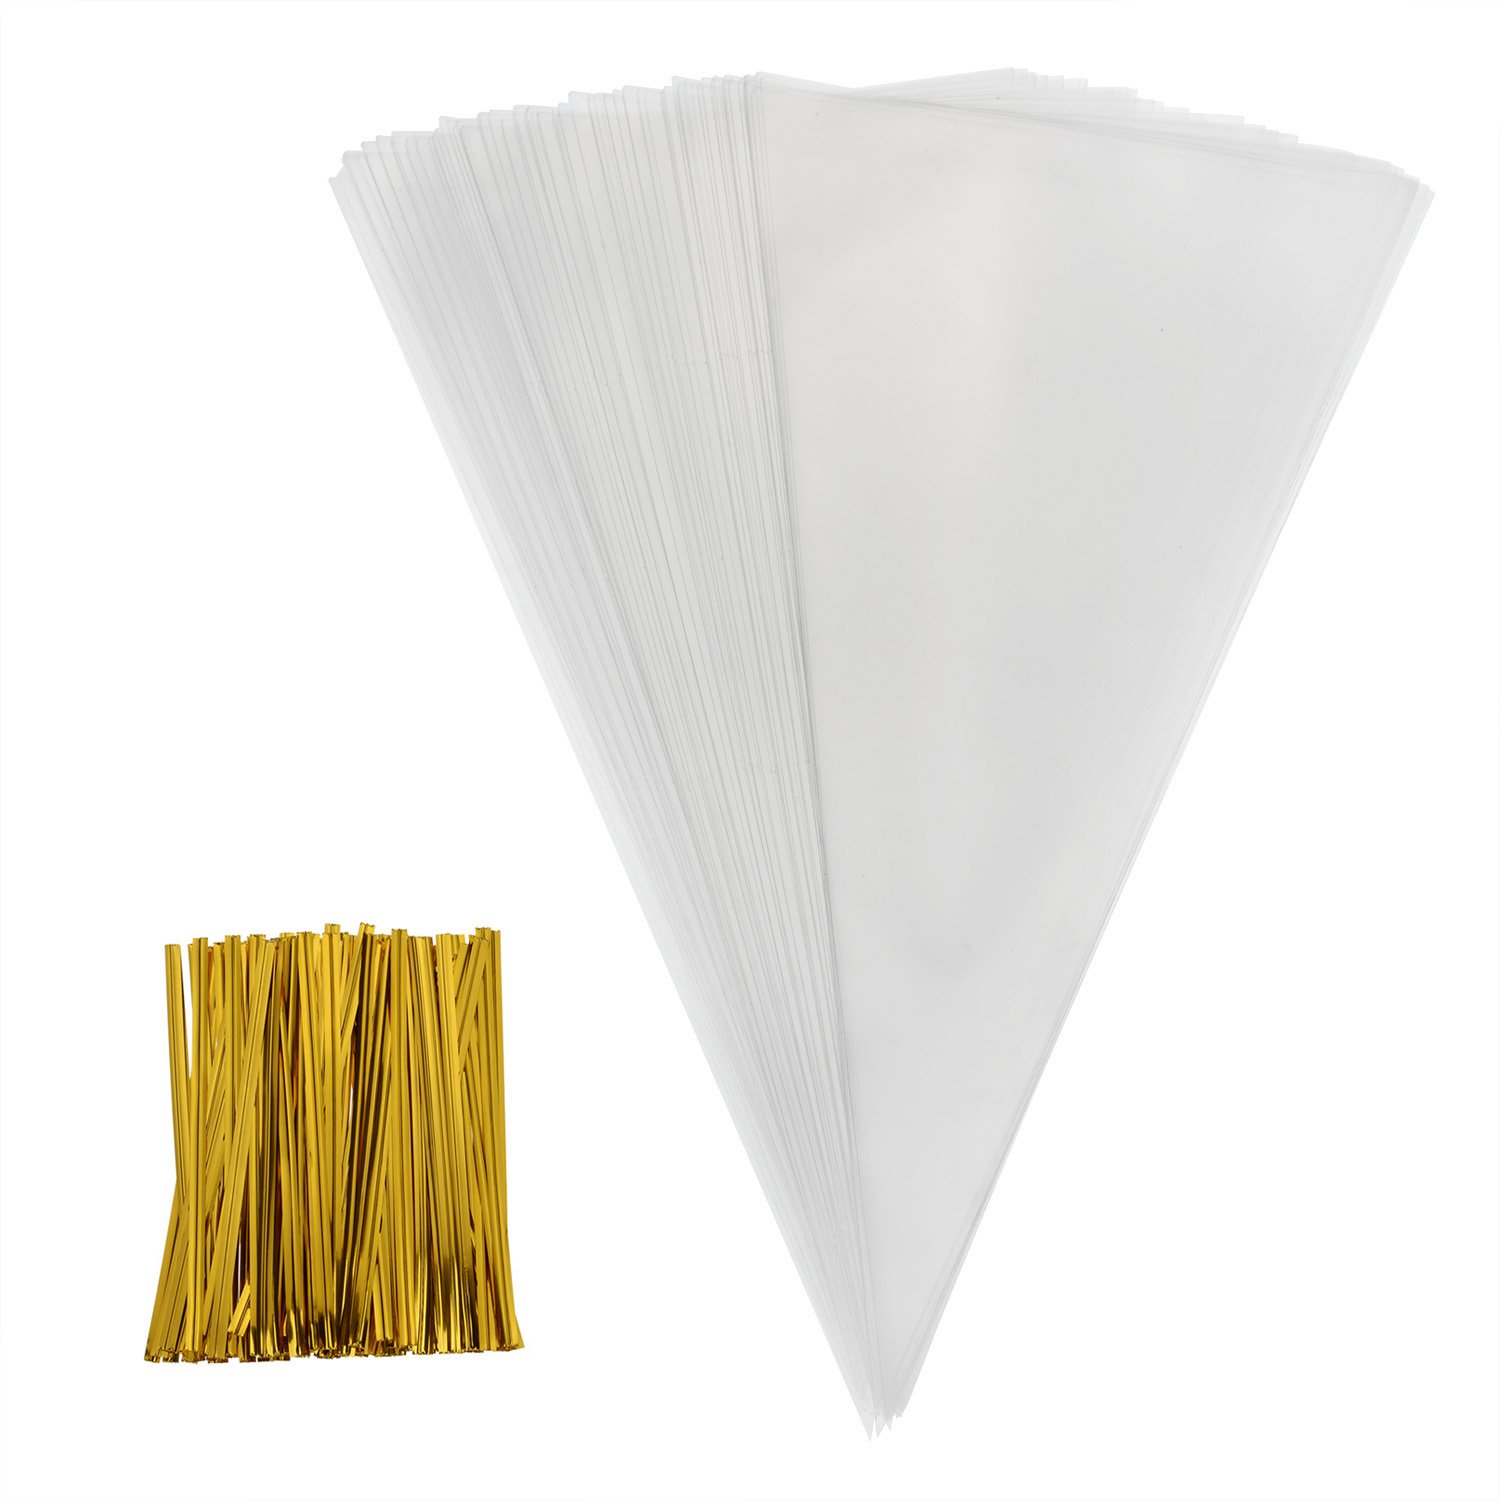 Outus 100 Piece Medium Transparent Cone Bags Clear Cello Bags Sweets Treat Bags with 100 Piece Gold Twist Ties, 11.8 by 6.3 Inch 4336872268